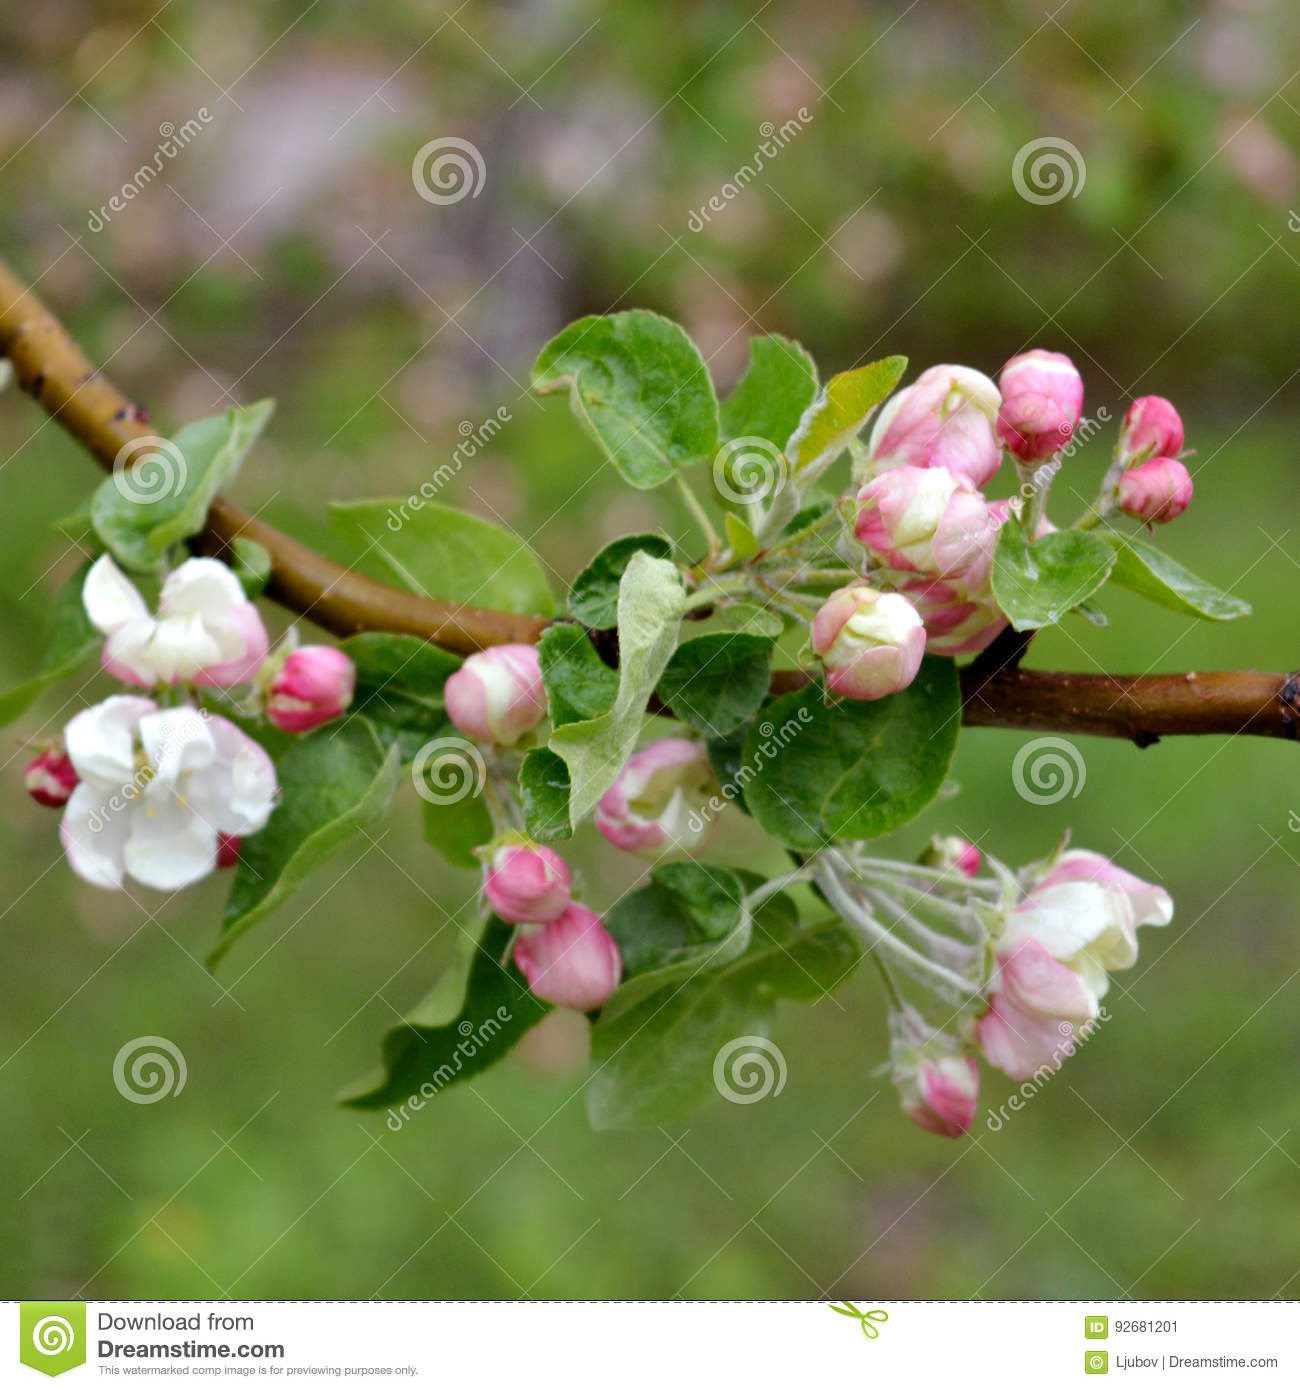 Apple Tree Blossom In Spring White And Pink Flowers Stock Image